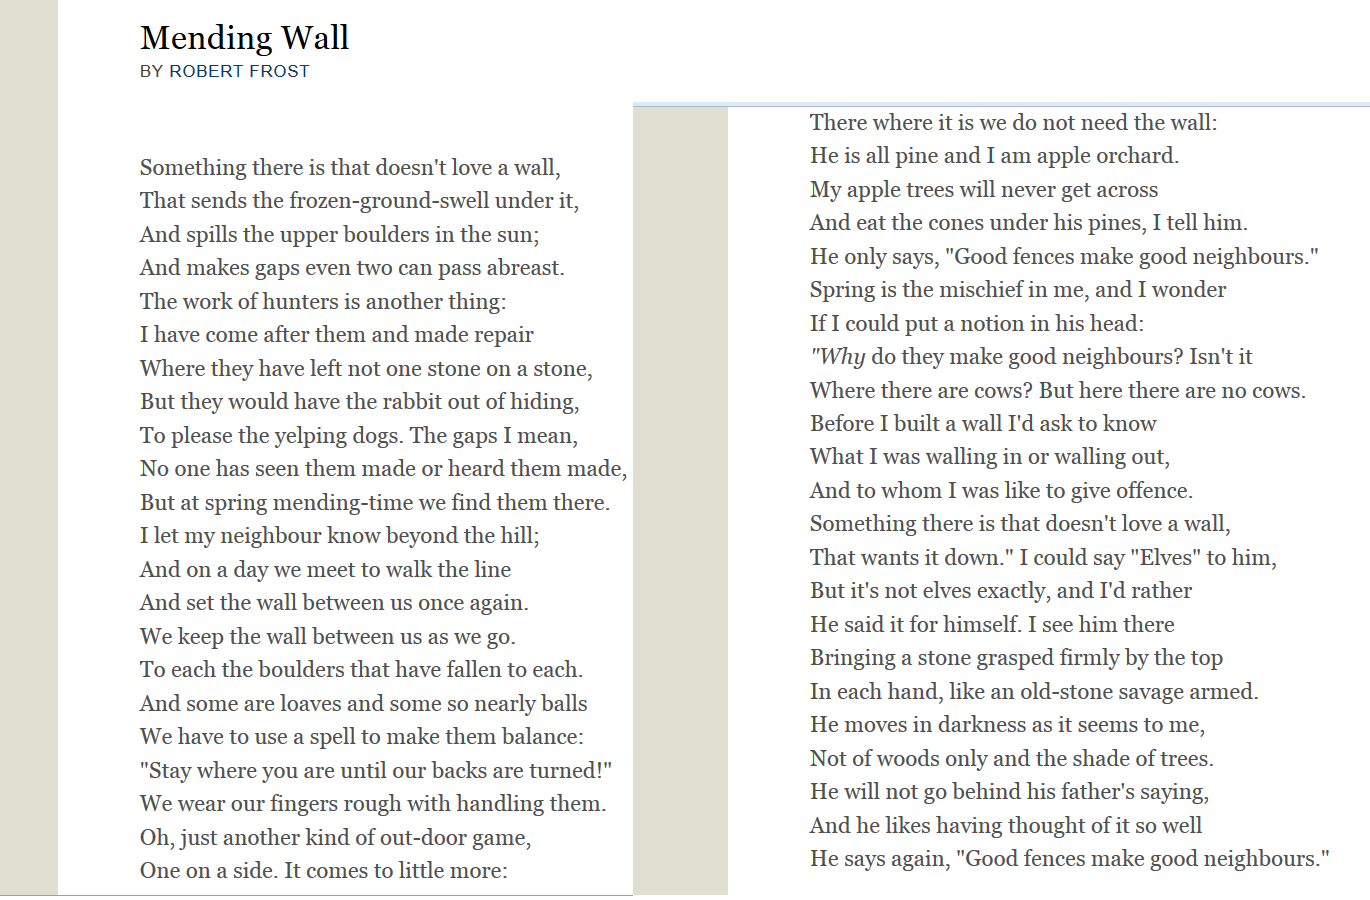 mending wall critical analysis pdf